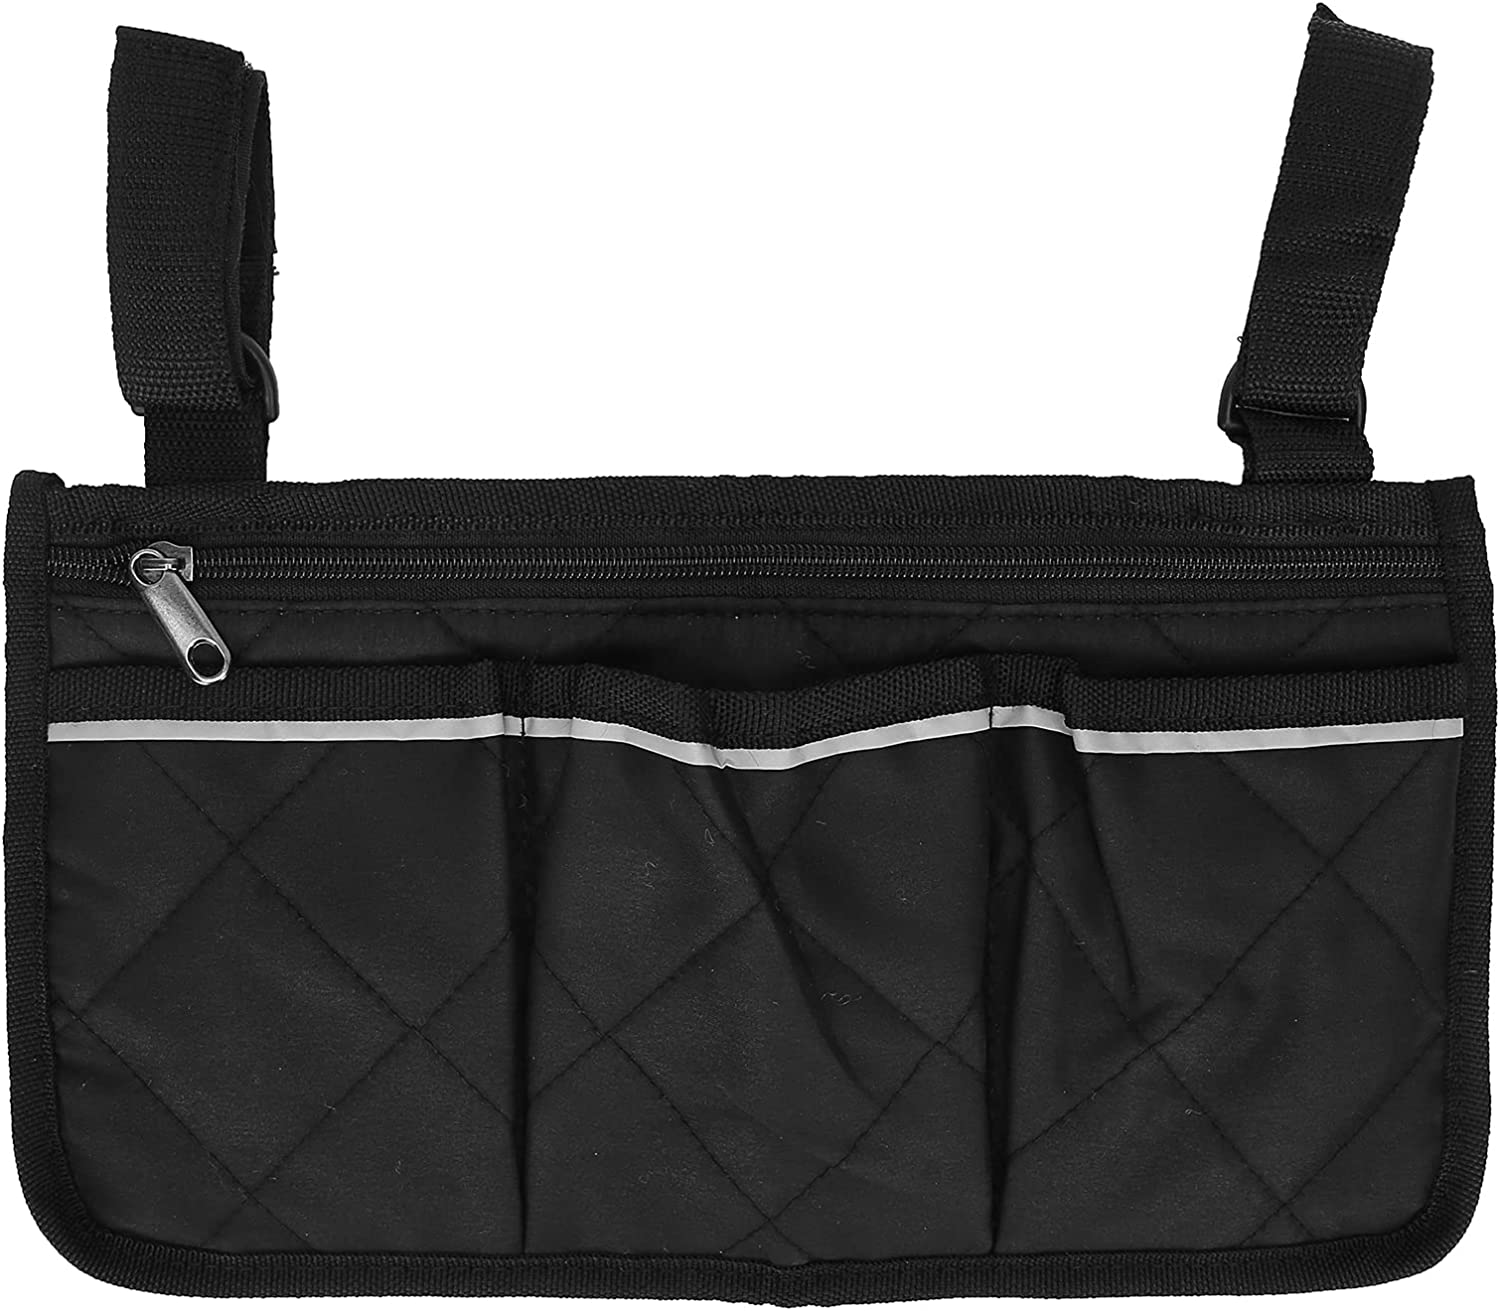 Pack of Direct stock Fashionable discount 1 Wheelchair Side Multifunctional Waterproof Bag Wheelc